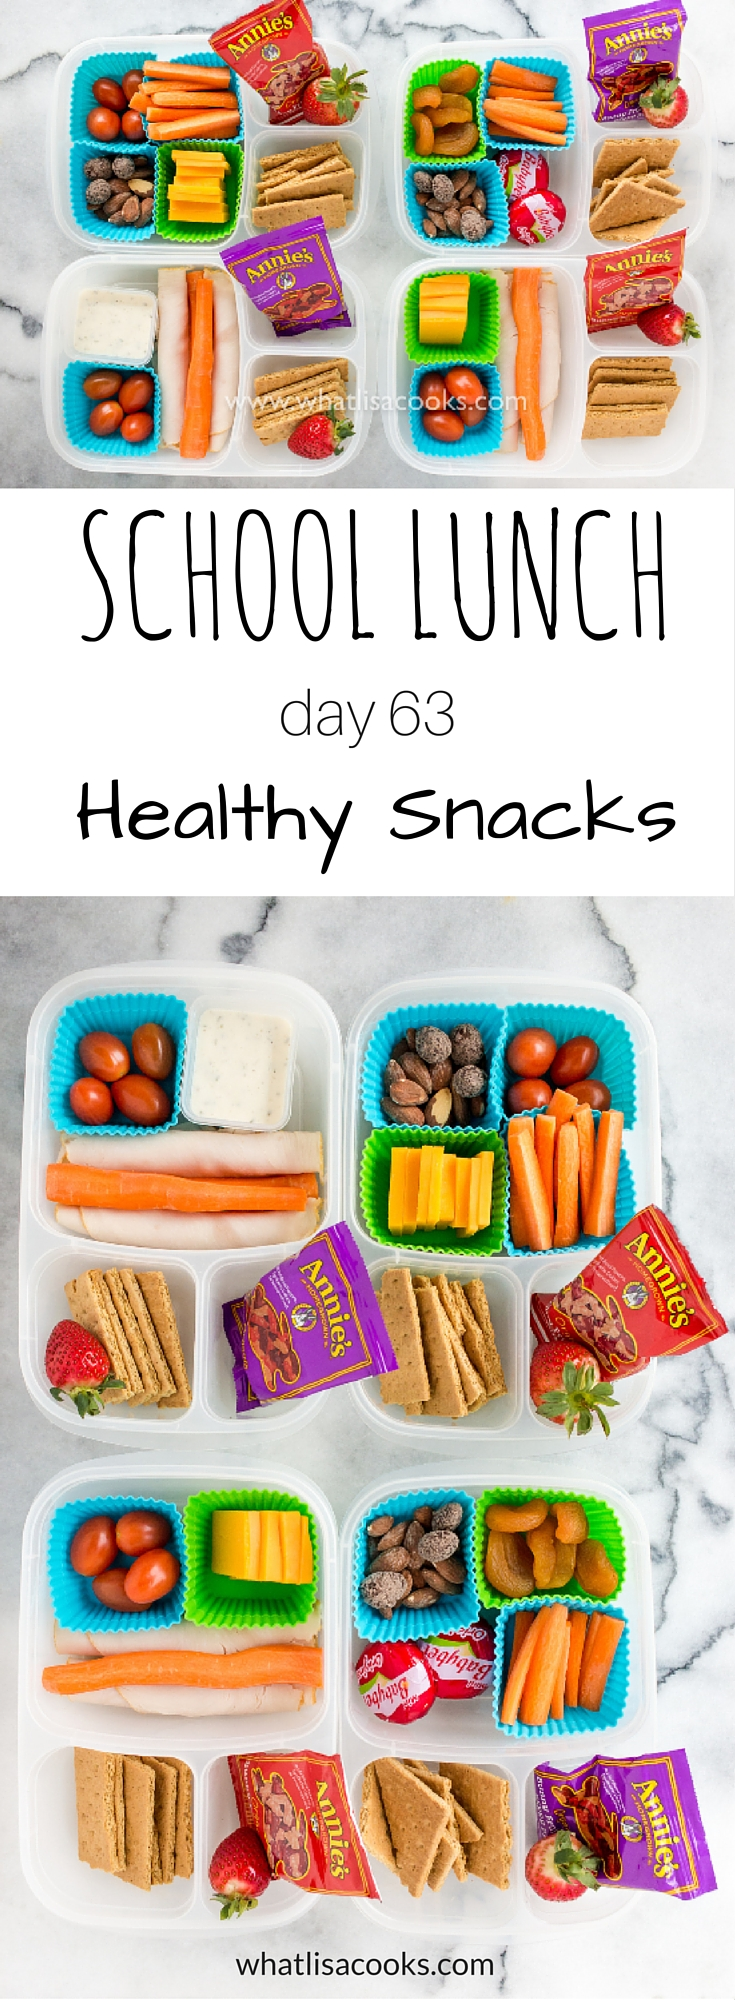 School lunch day 63: easy and healthy snack boxes from WhatLisaCooks